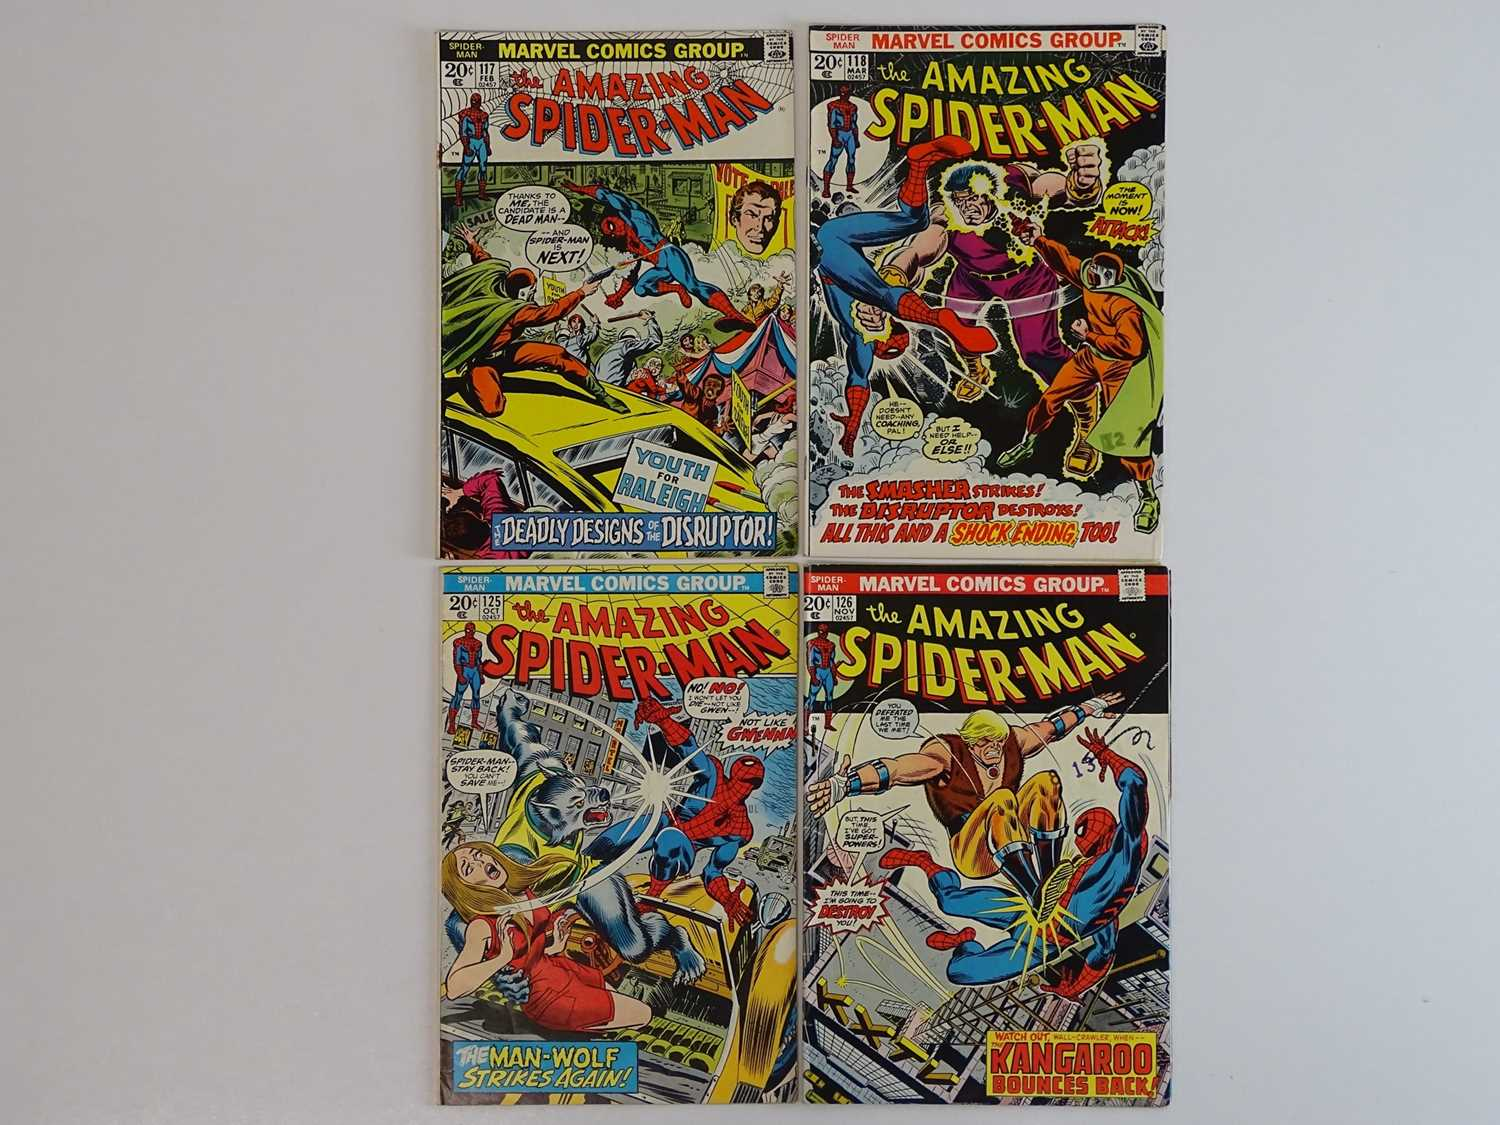 AMAZING SPIDER-MAN #117, 118, 125, 126 - (4 in Lot) - (1973 - MARVEL) - Includes Origin and Second